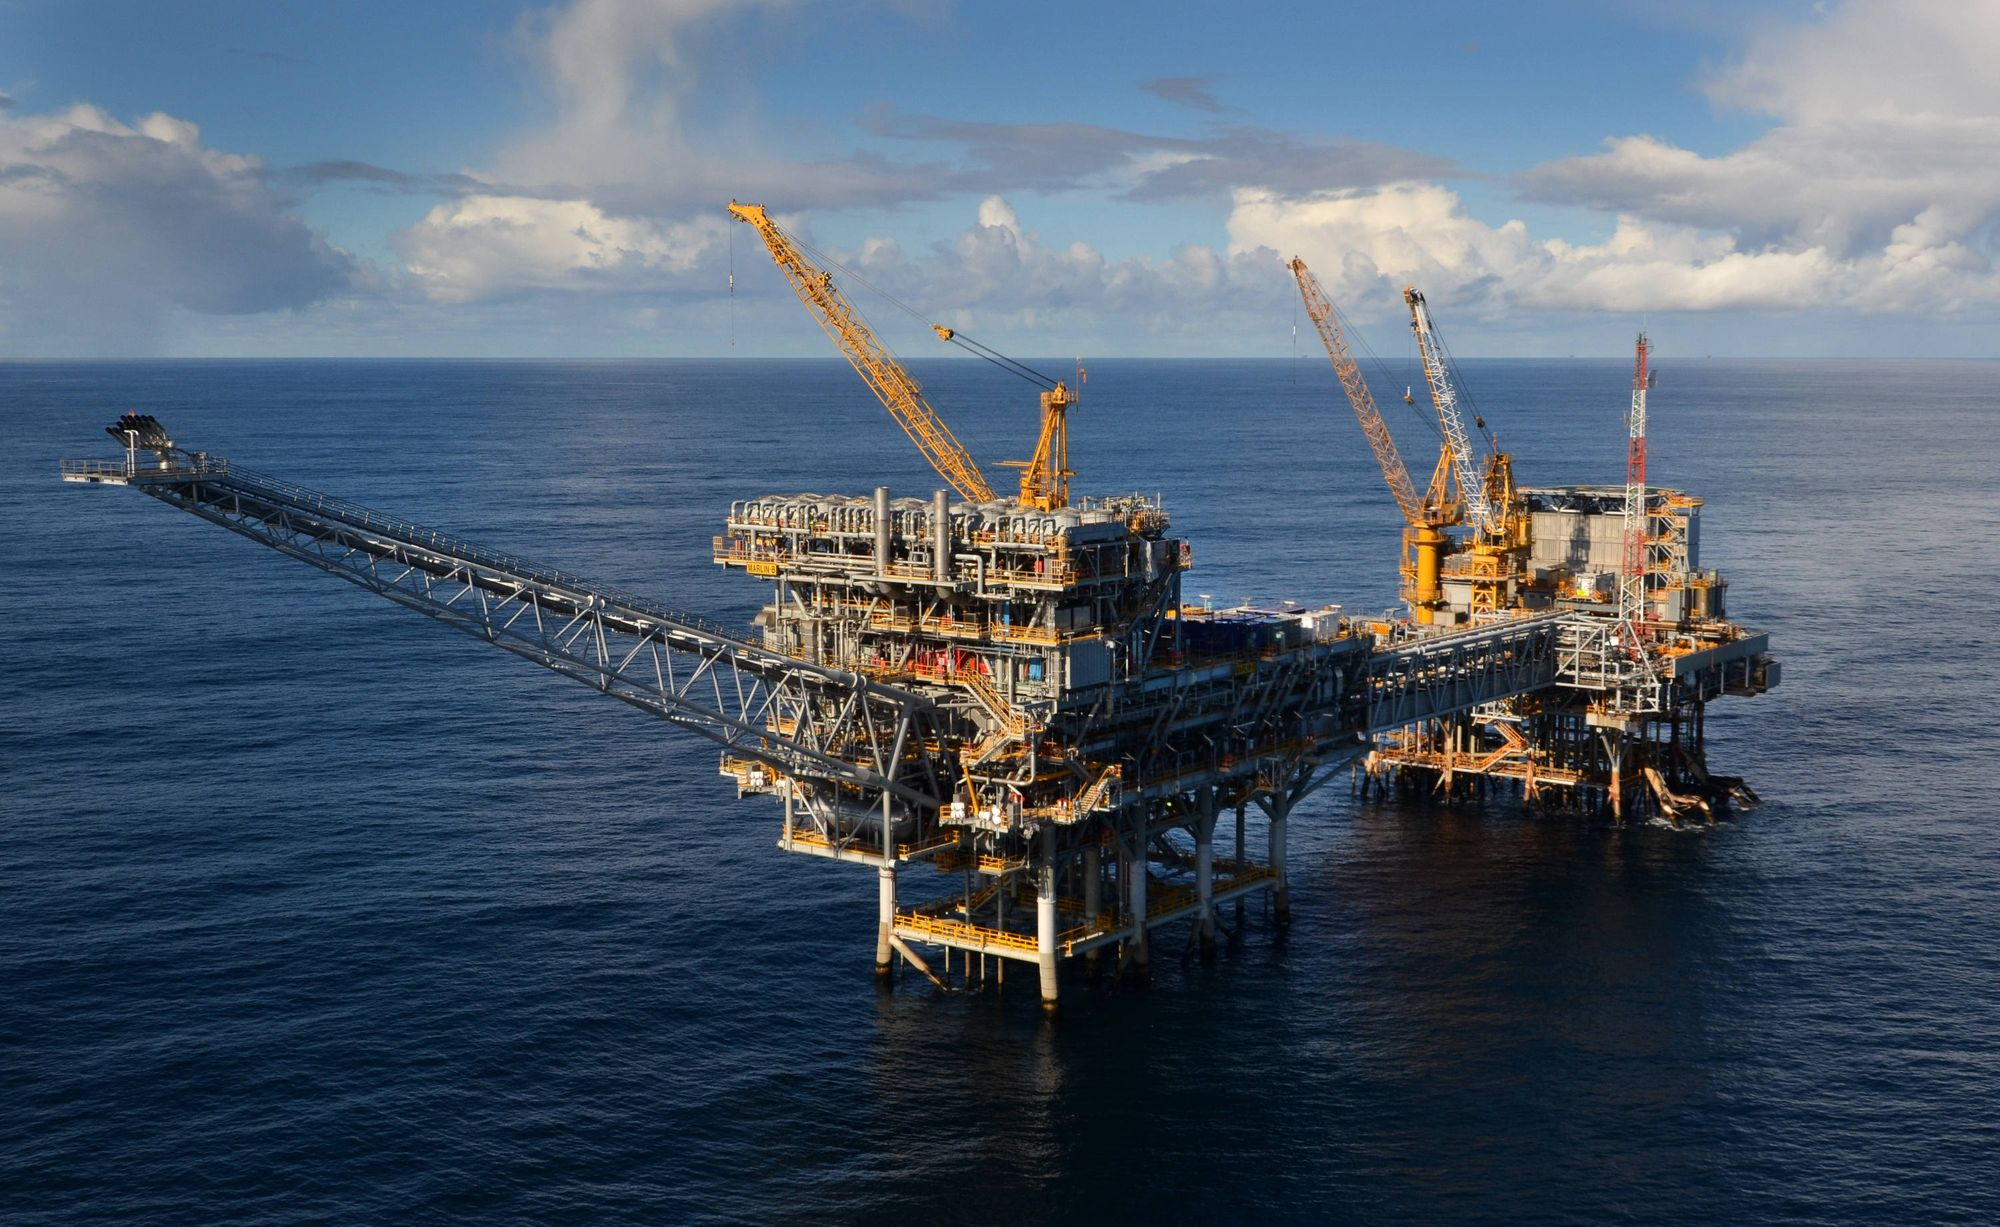 Offshore oil & gas sell-off puts focus back on decommissioning policy